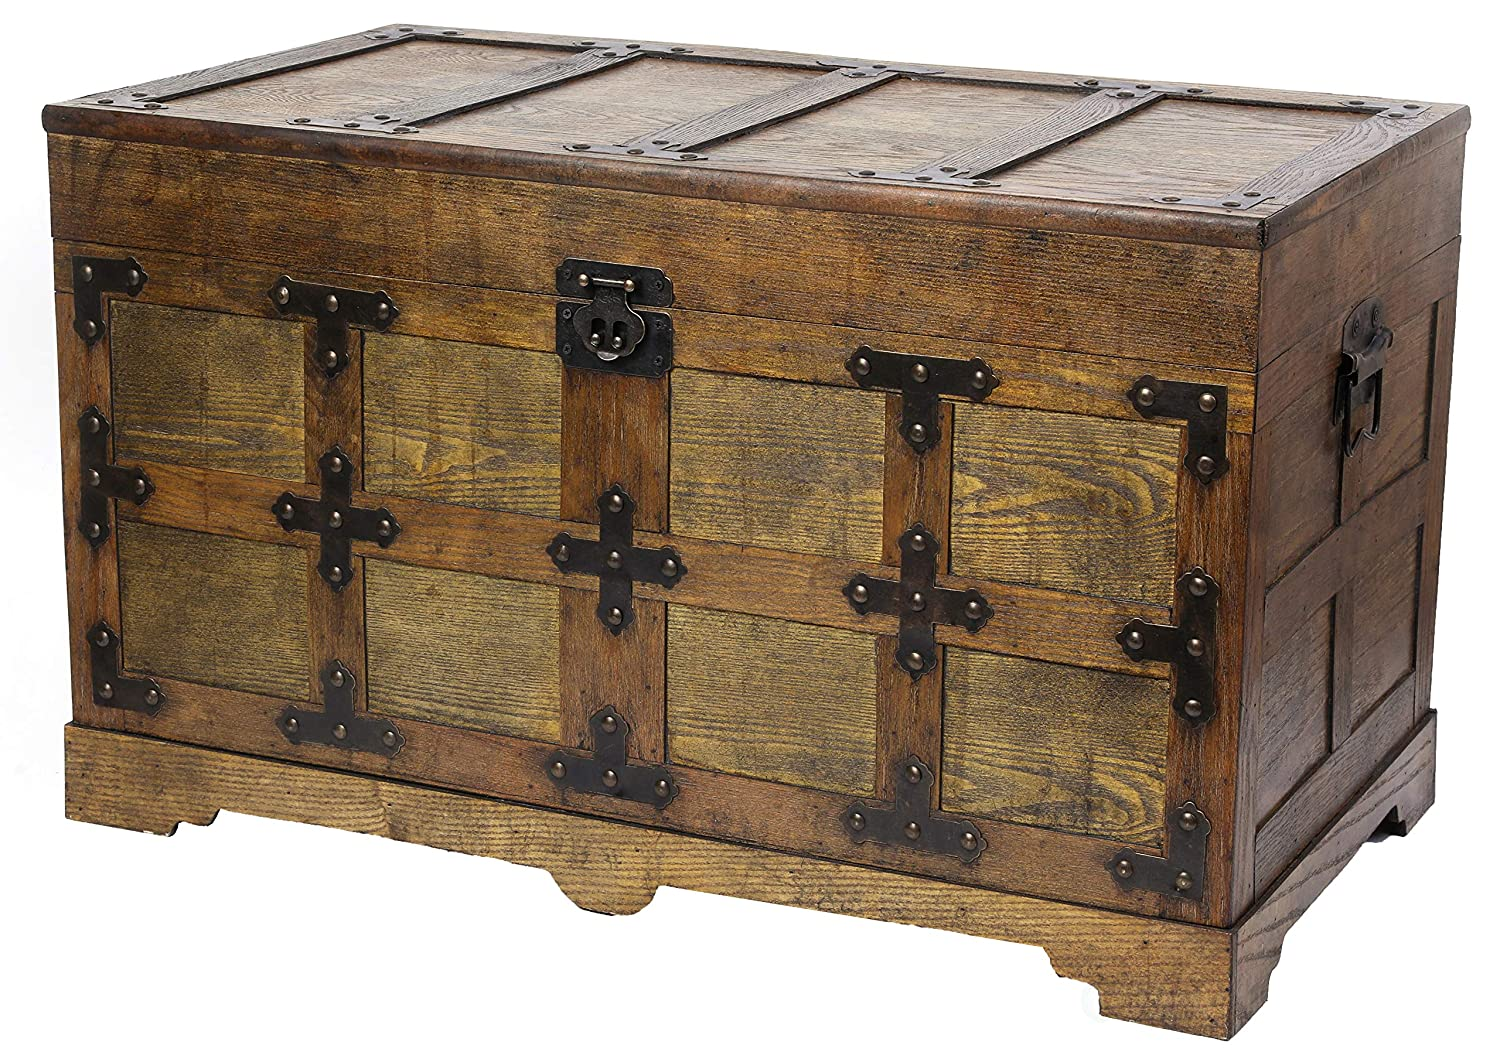 Vintiquewise QI003413.M Rustic Natural Wooden Streamer Trunk with Studded Detail Medium Brown